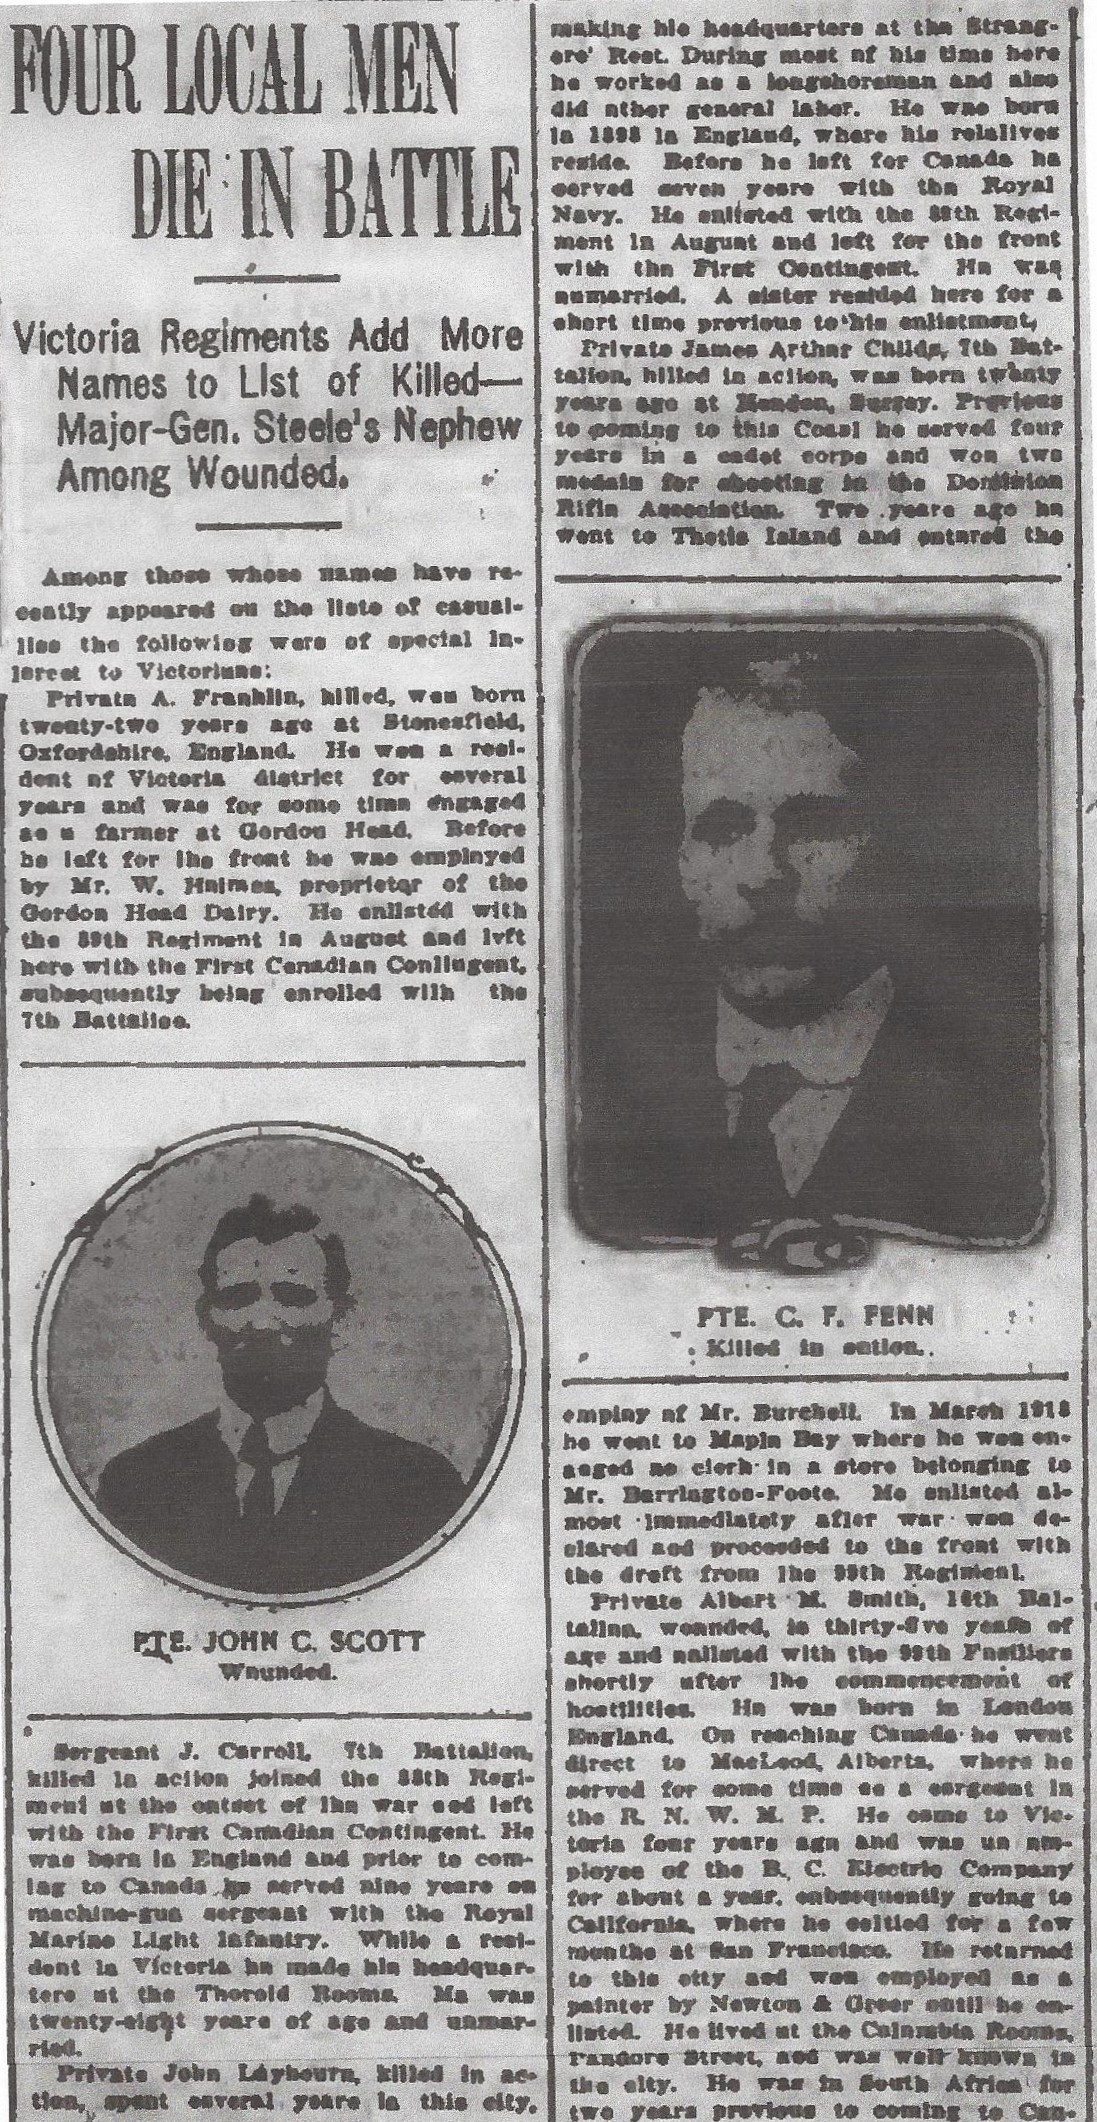 Newspaper clipping– From the Daily Colonist of May 14, 1915. Image taken from web address of https://archive.org/stream/dailycolonist57y133uvic#mode/1up